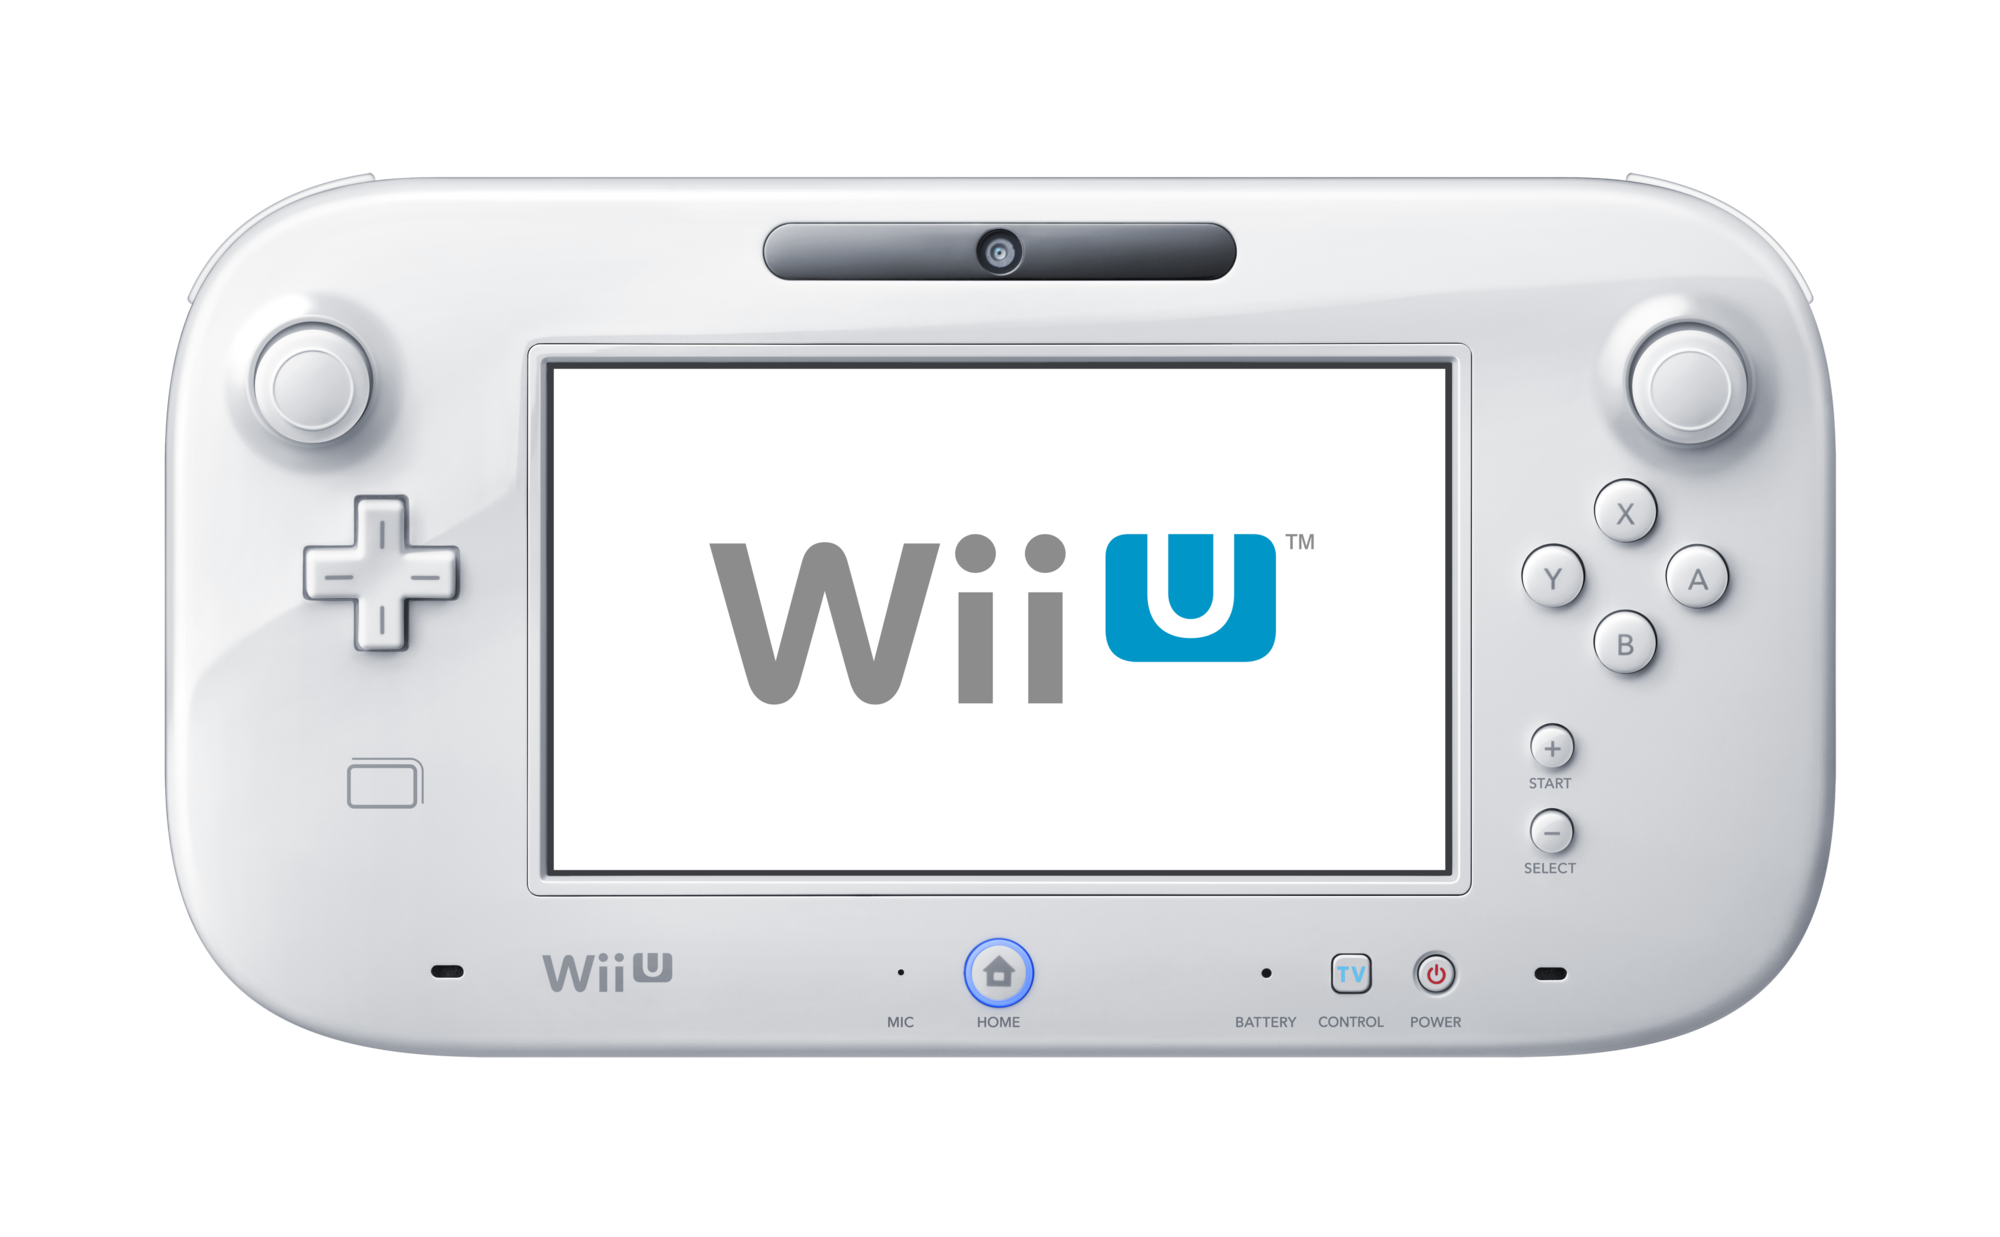 Transparent images pluspng image. Wii u controller png clip art black and white download